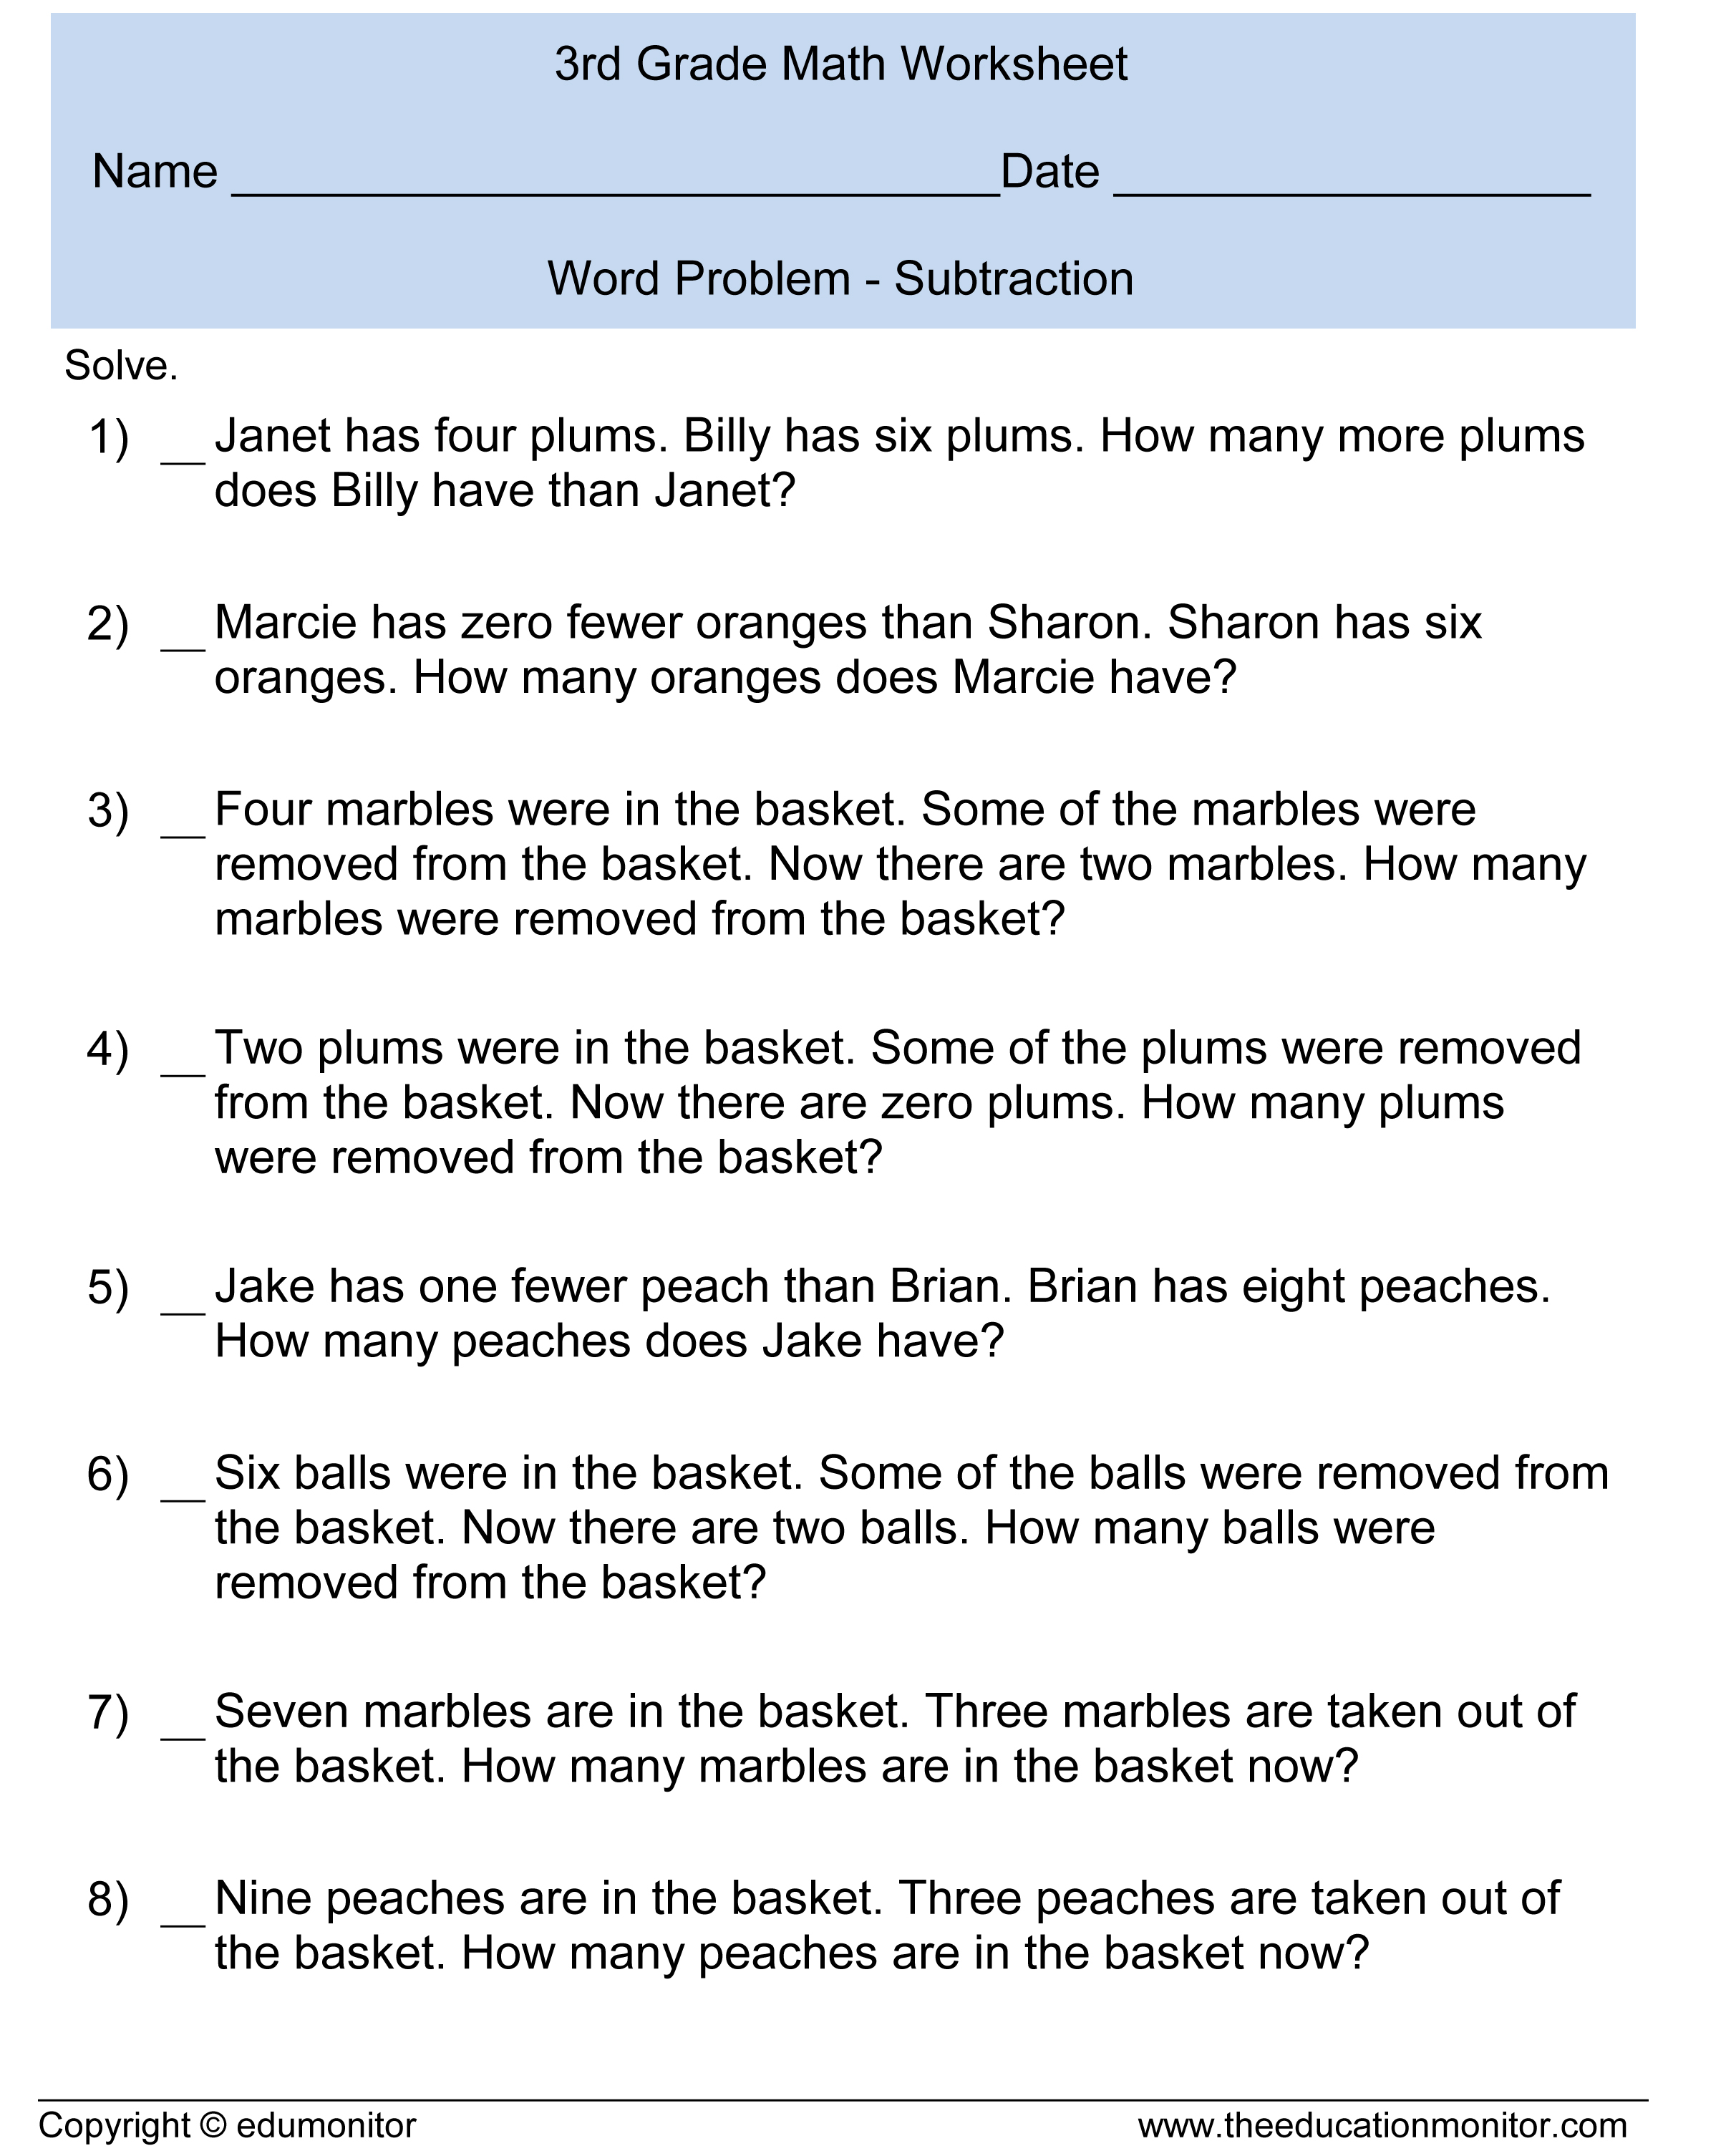 math worksheet : subtraction word problems 3rd grade for your kids : Free Printable 2nd Grade Math Word Problems Worksheets